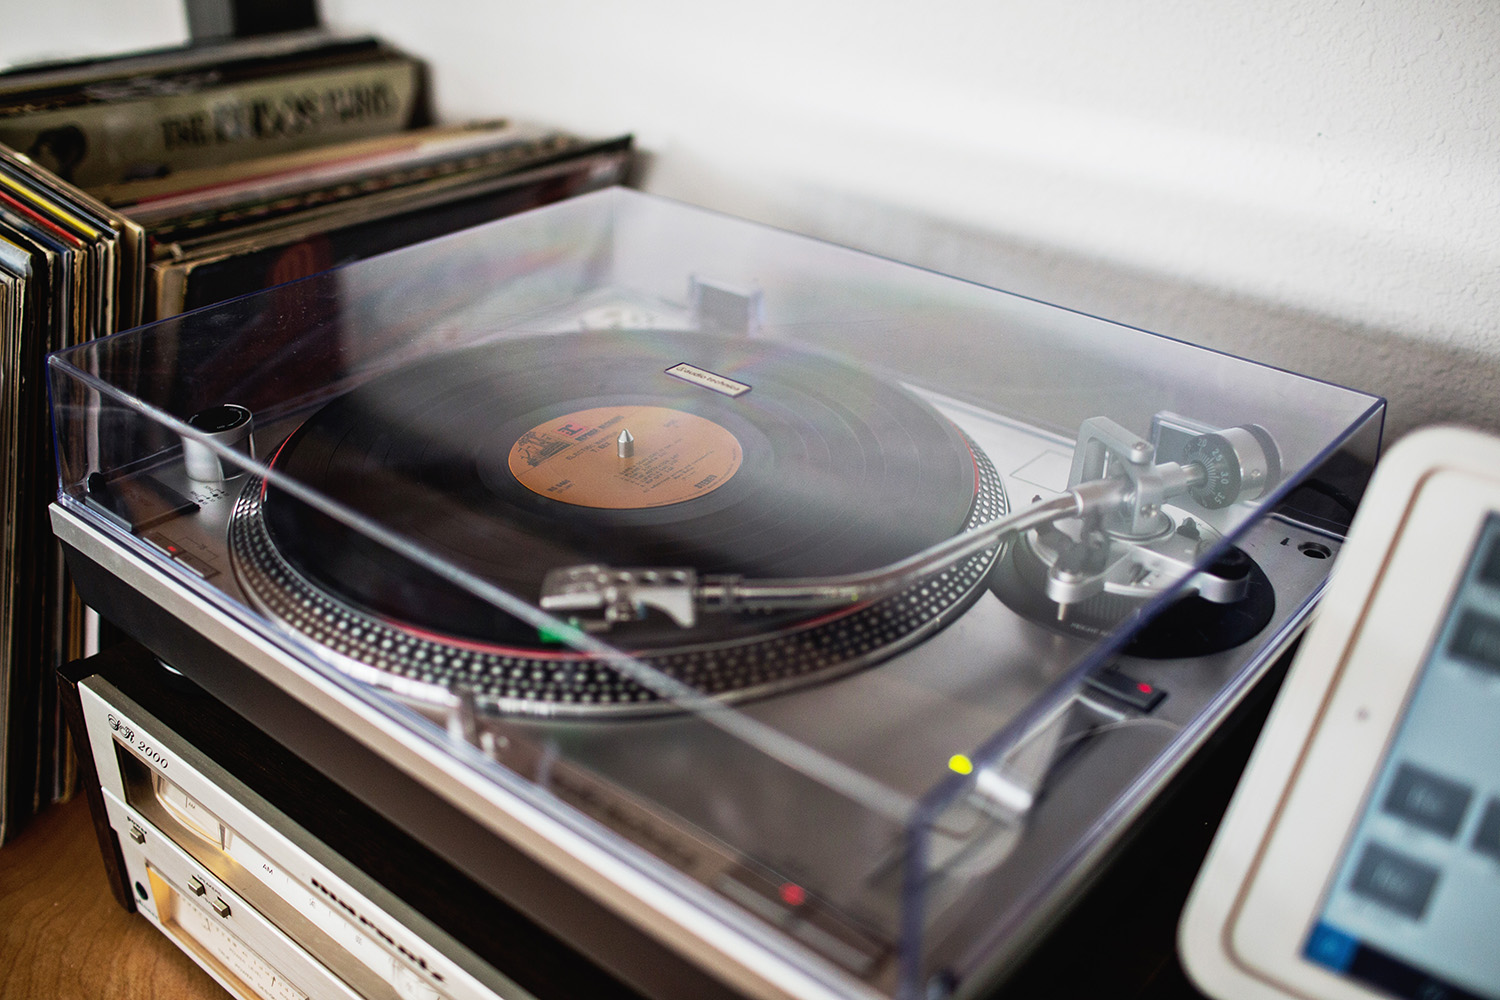 The Golden Girl Rum Club record player